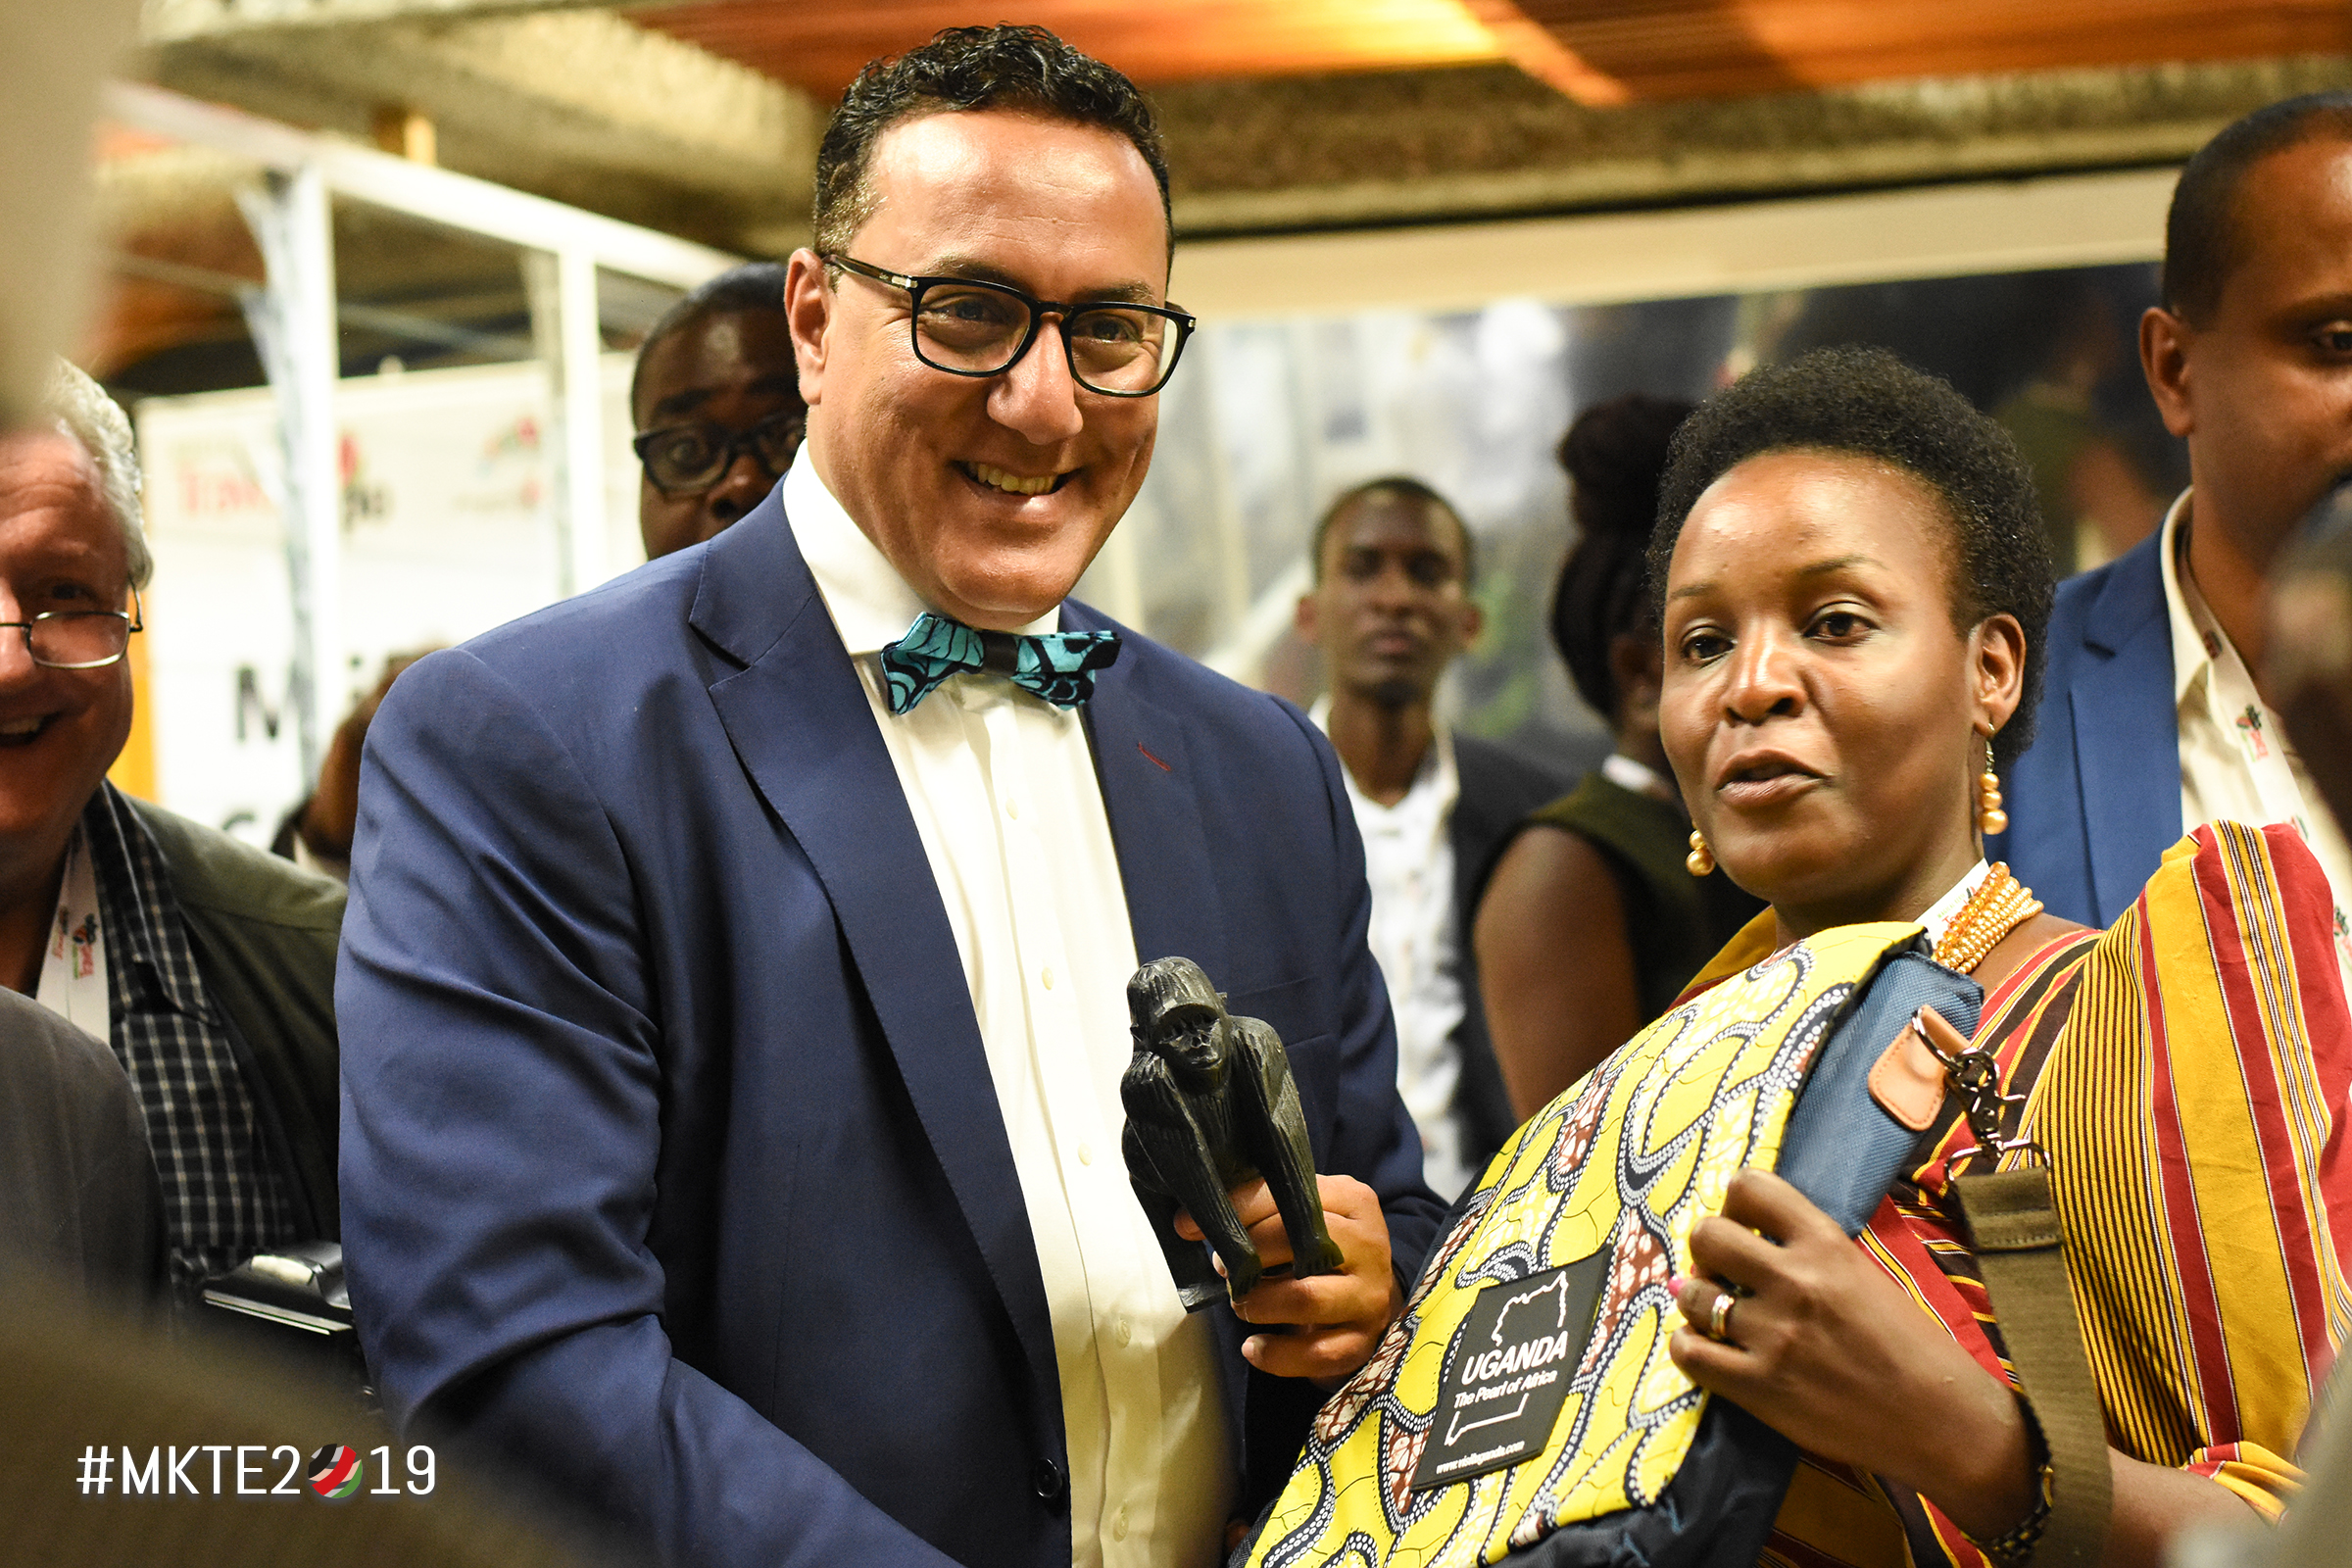 MKTE 2019_Media Address & Interviews_010